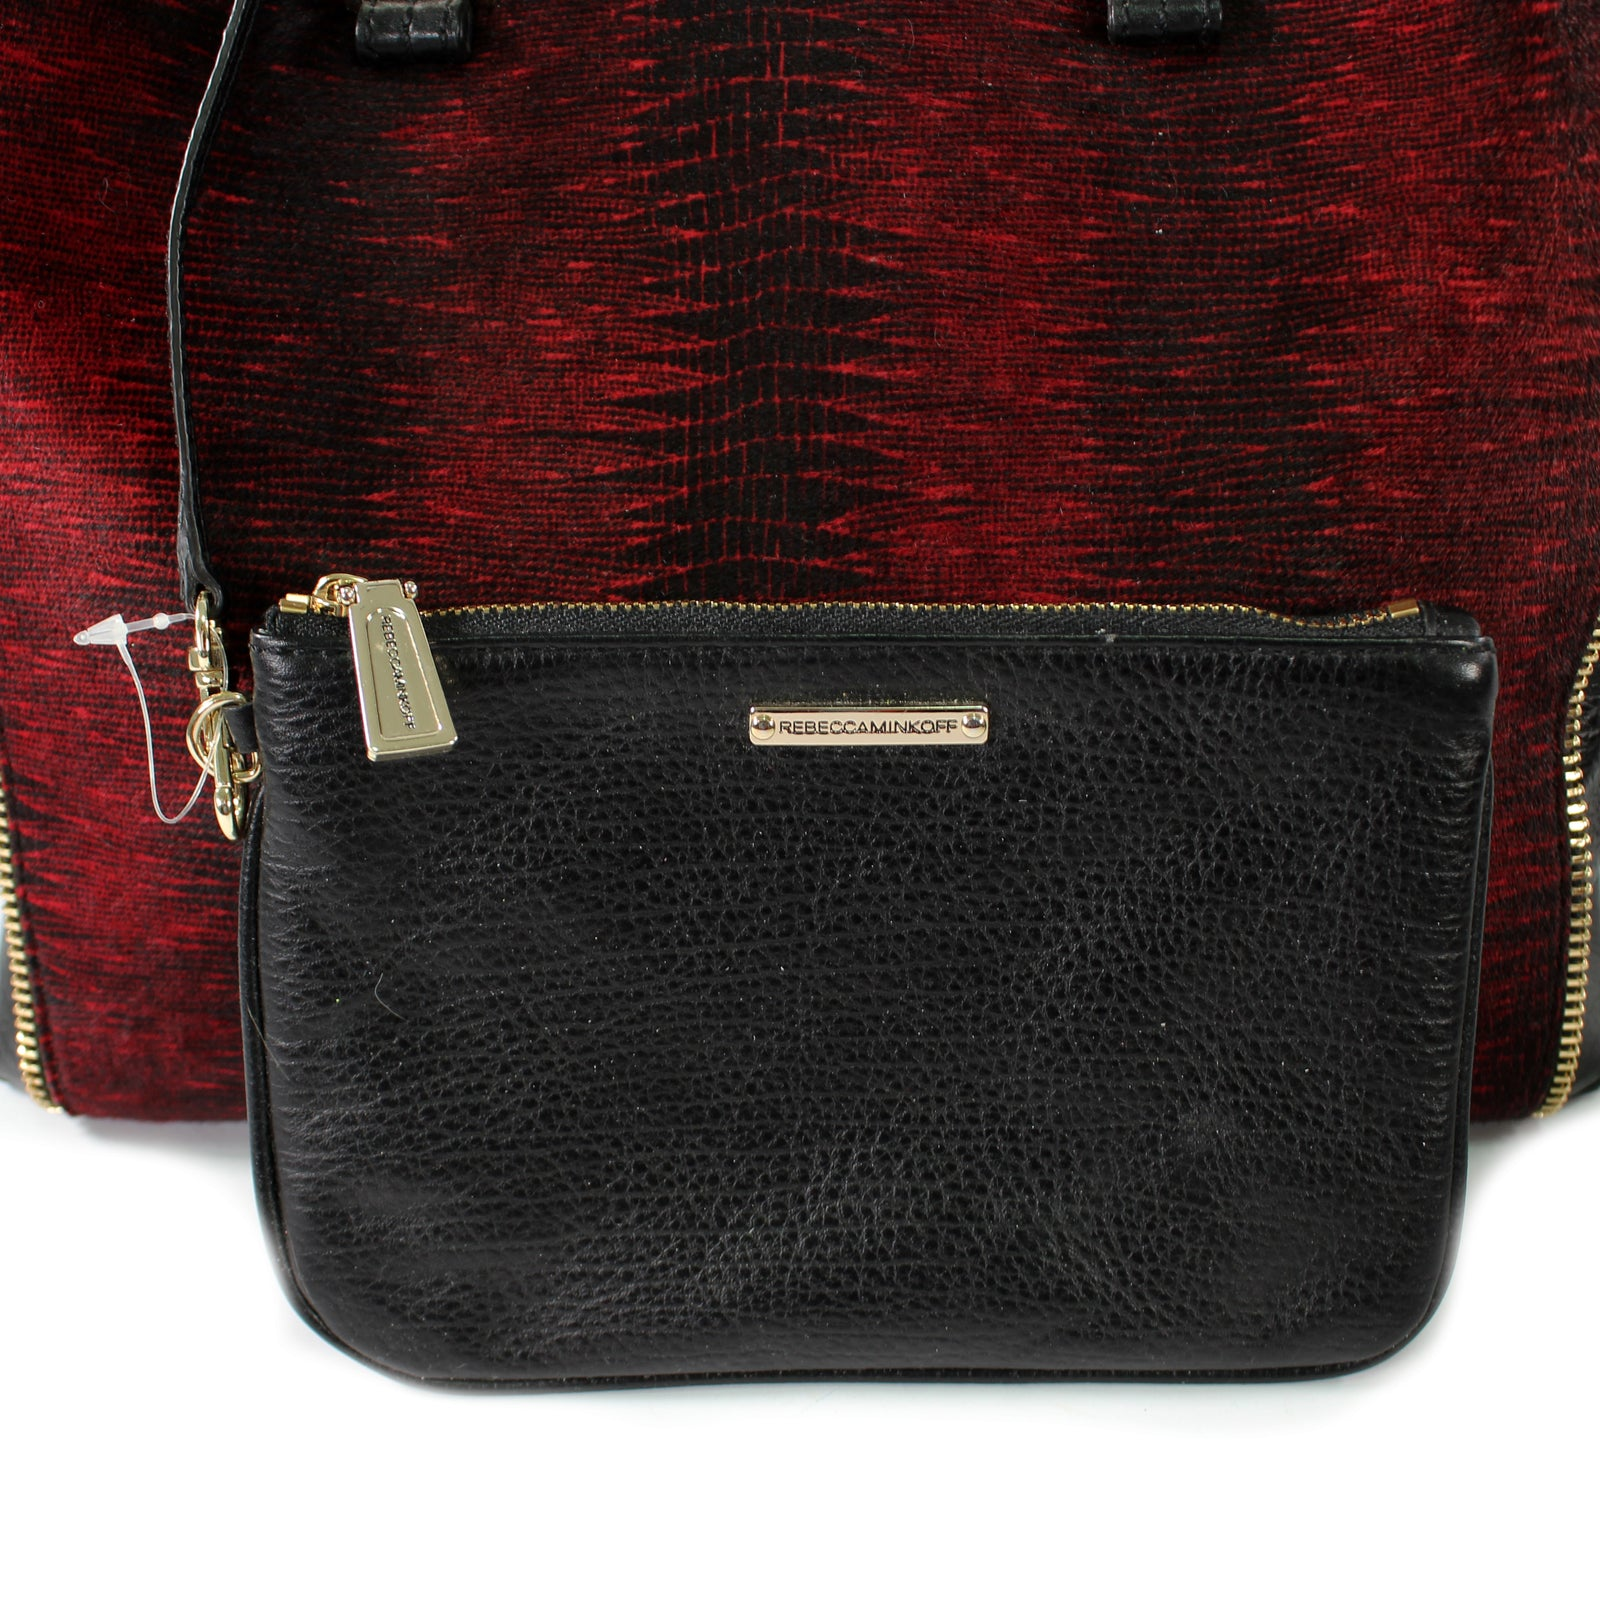 Black & Red Satchel